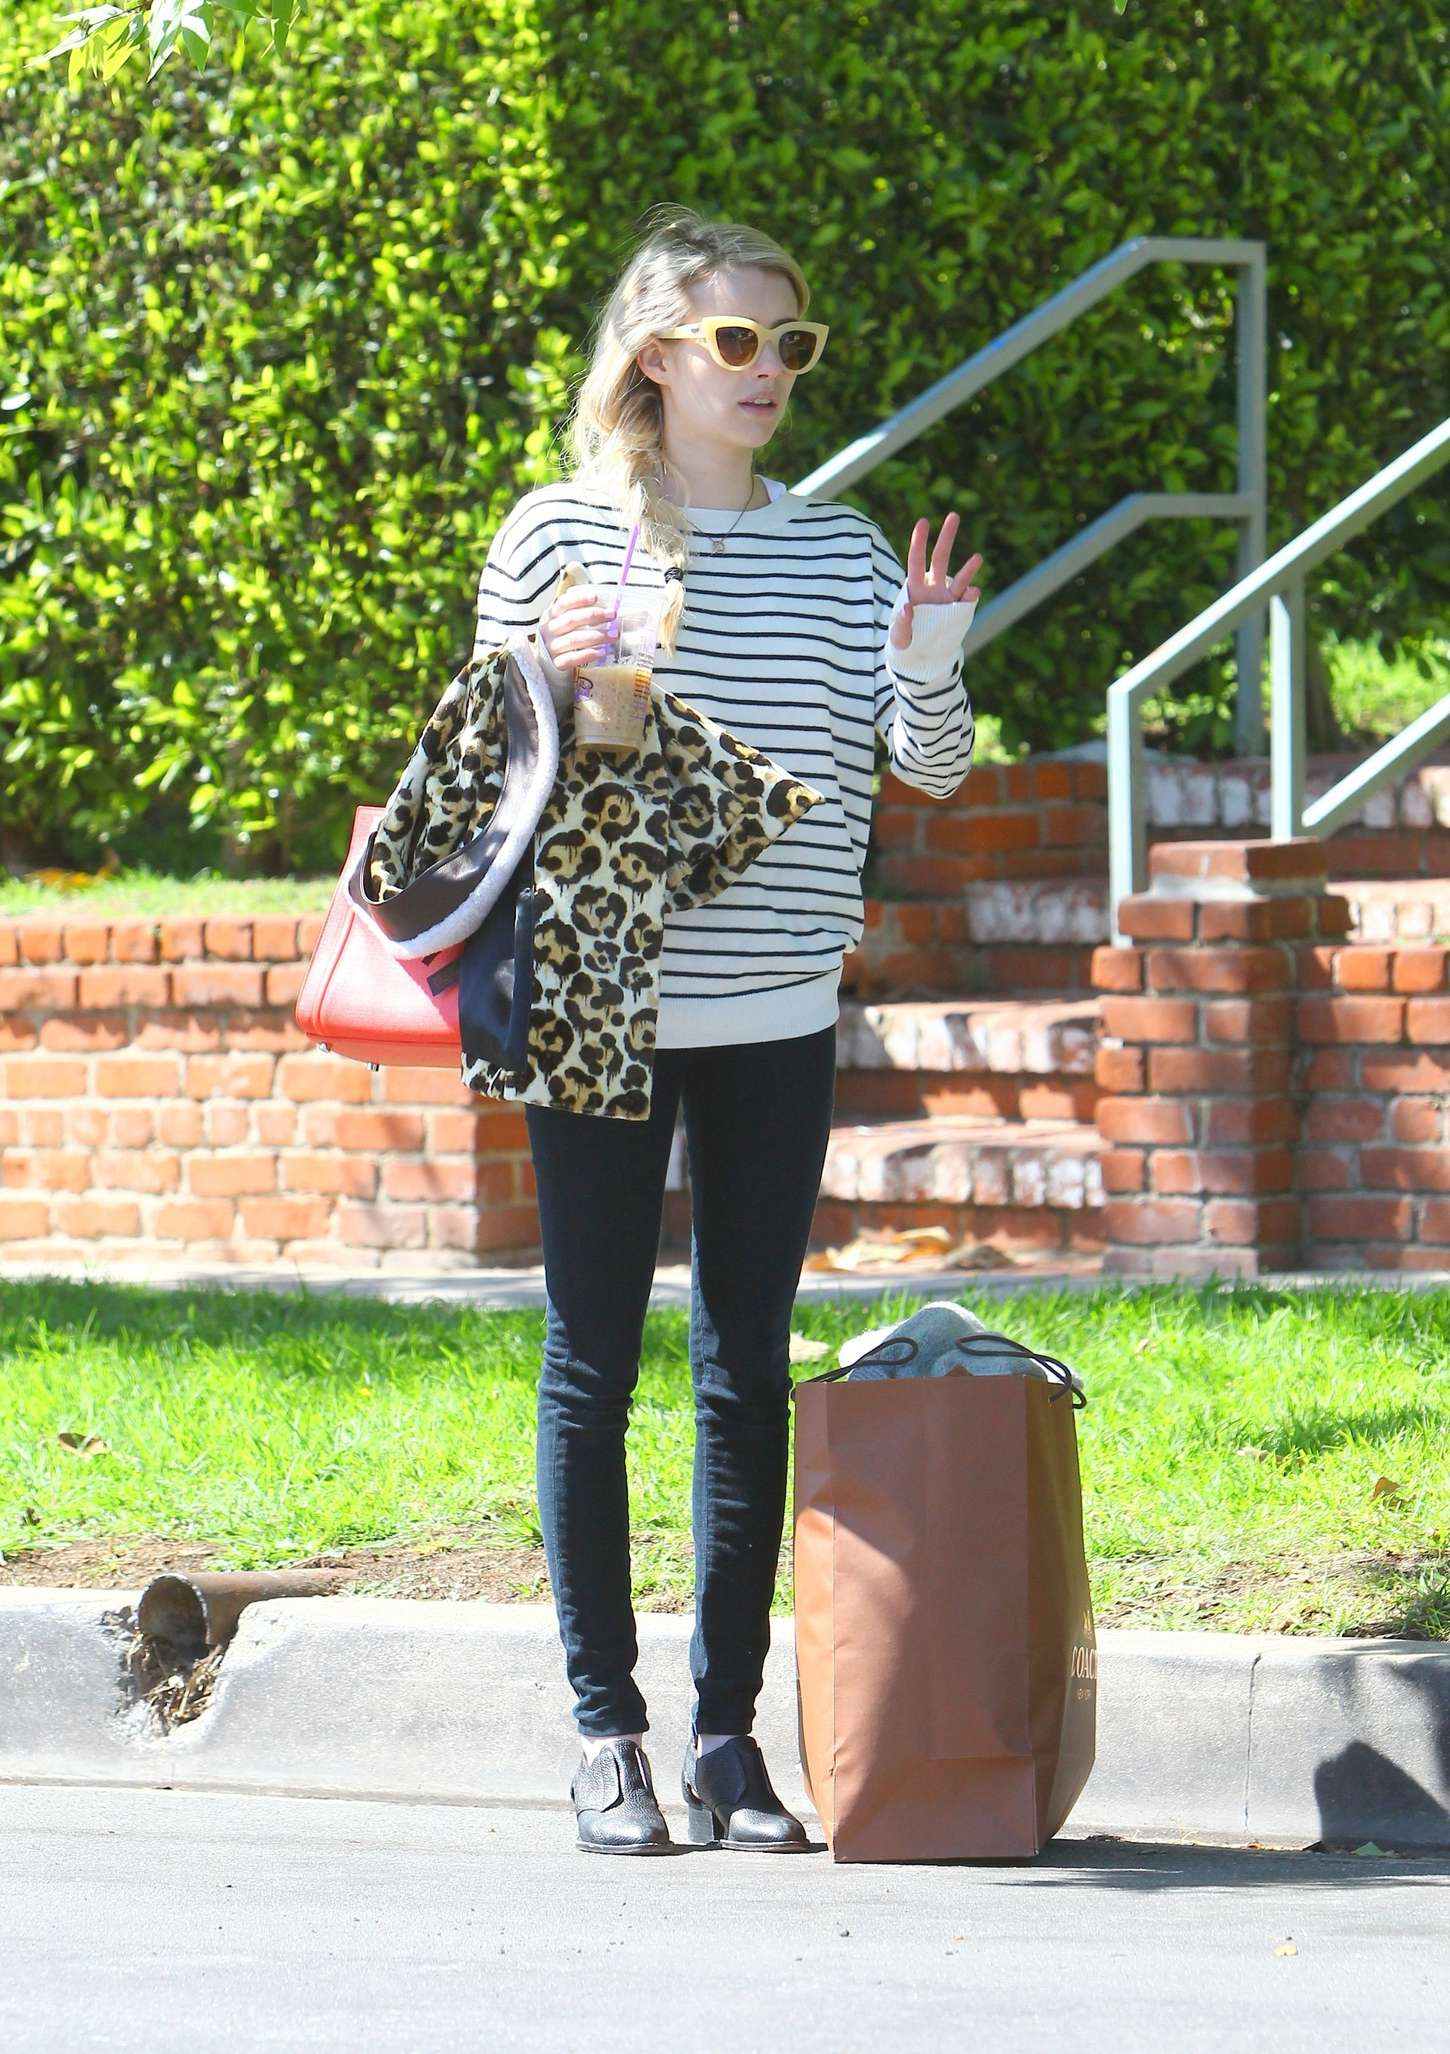 Emma Roberts Leaving Her Home In Los Angeles Celebrity Wiki Onceleb Wiki